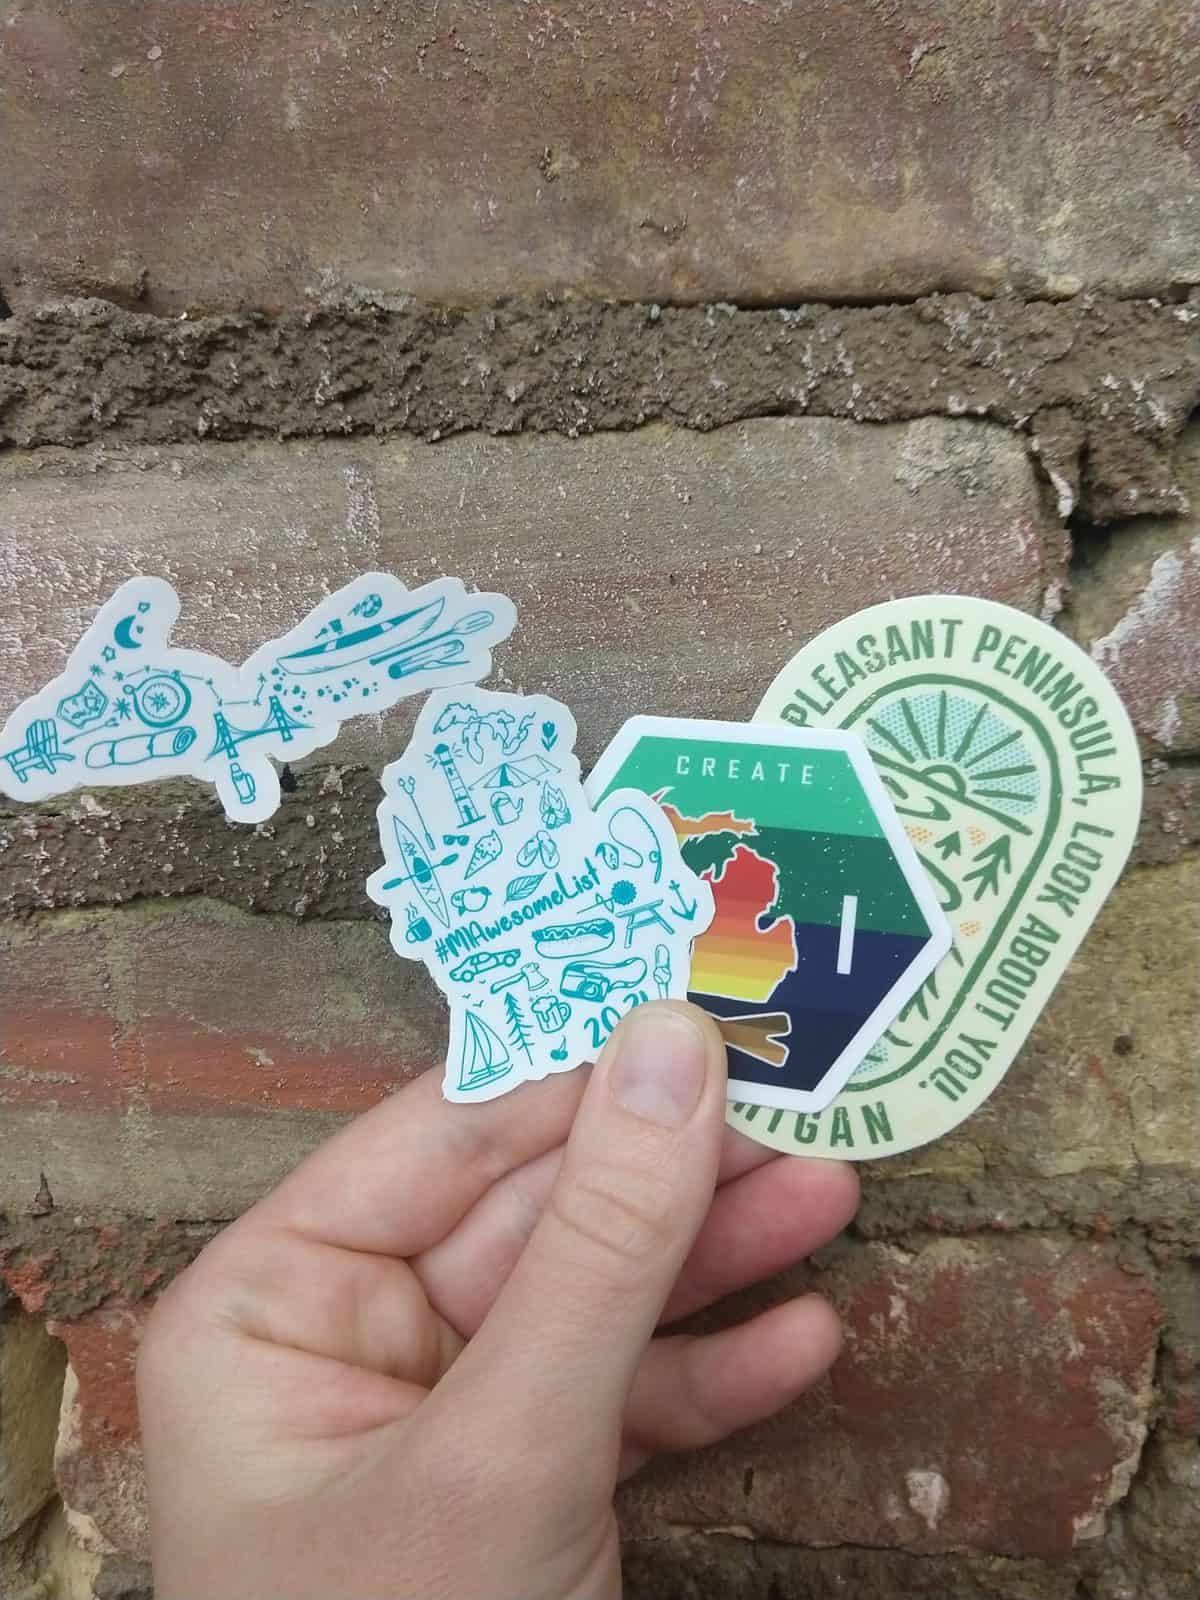 Win a #MIAwesomeList Sticker Pack from AwesomeMitten - June 2021